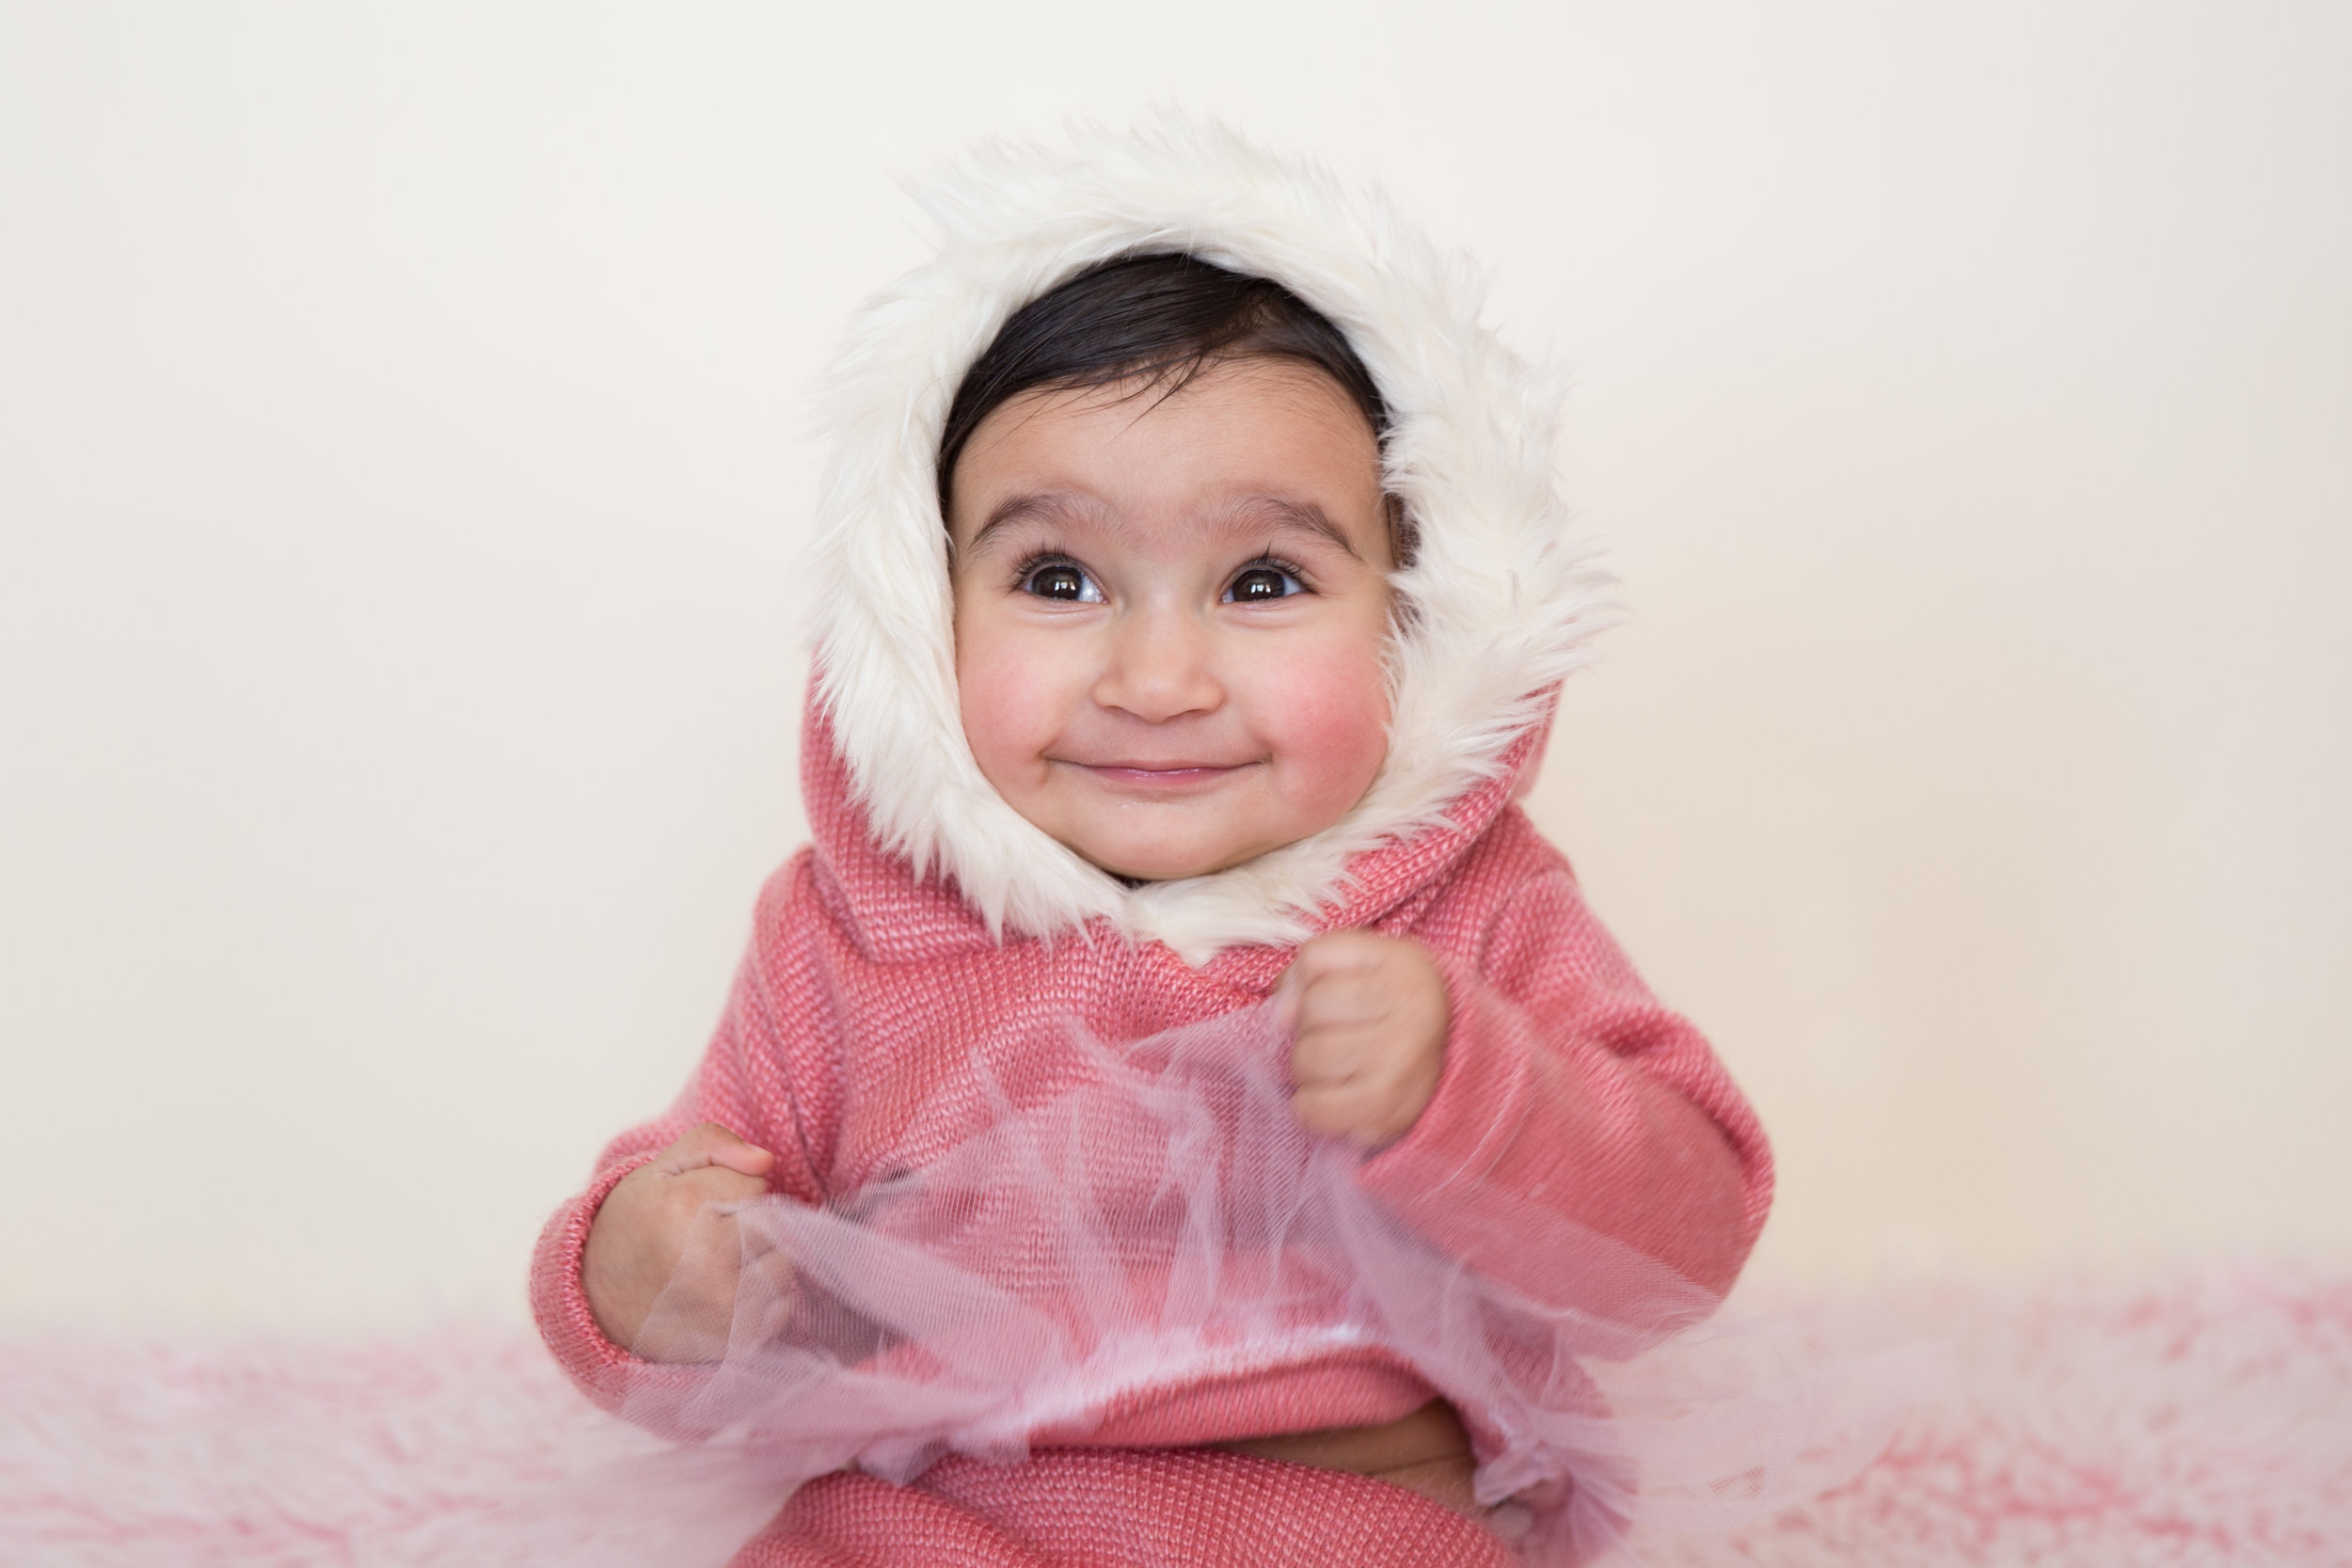 Sweet little baby girl in a pink outfit. Calgary baby photographer.